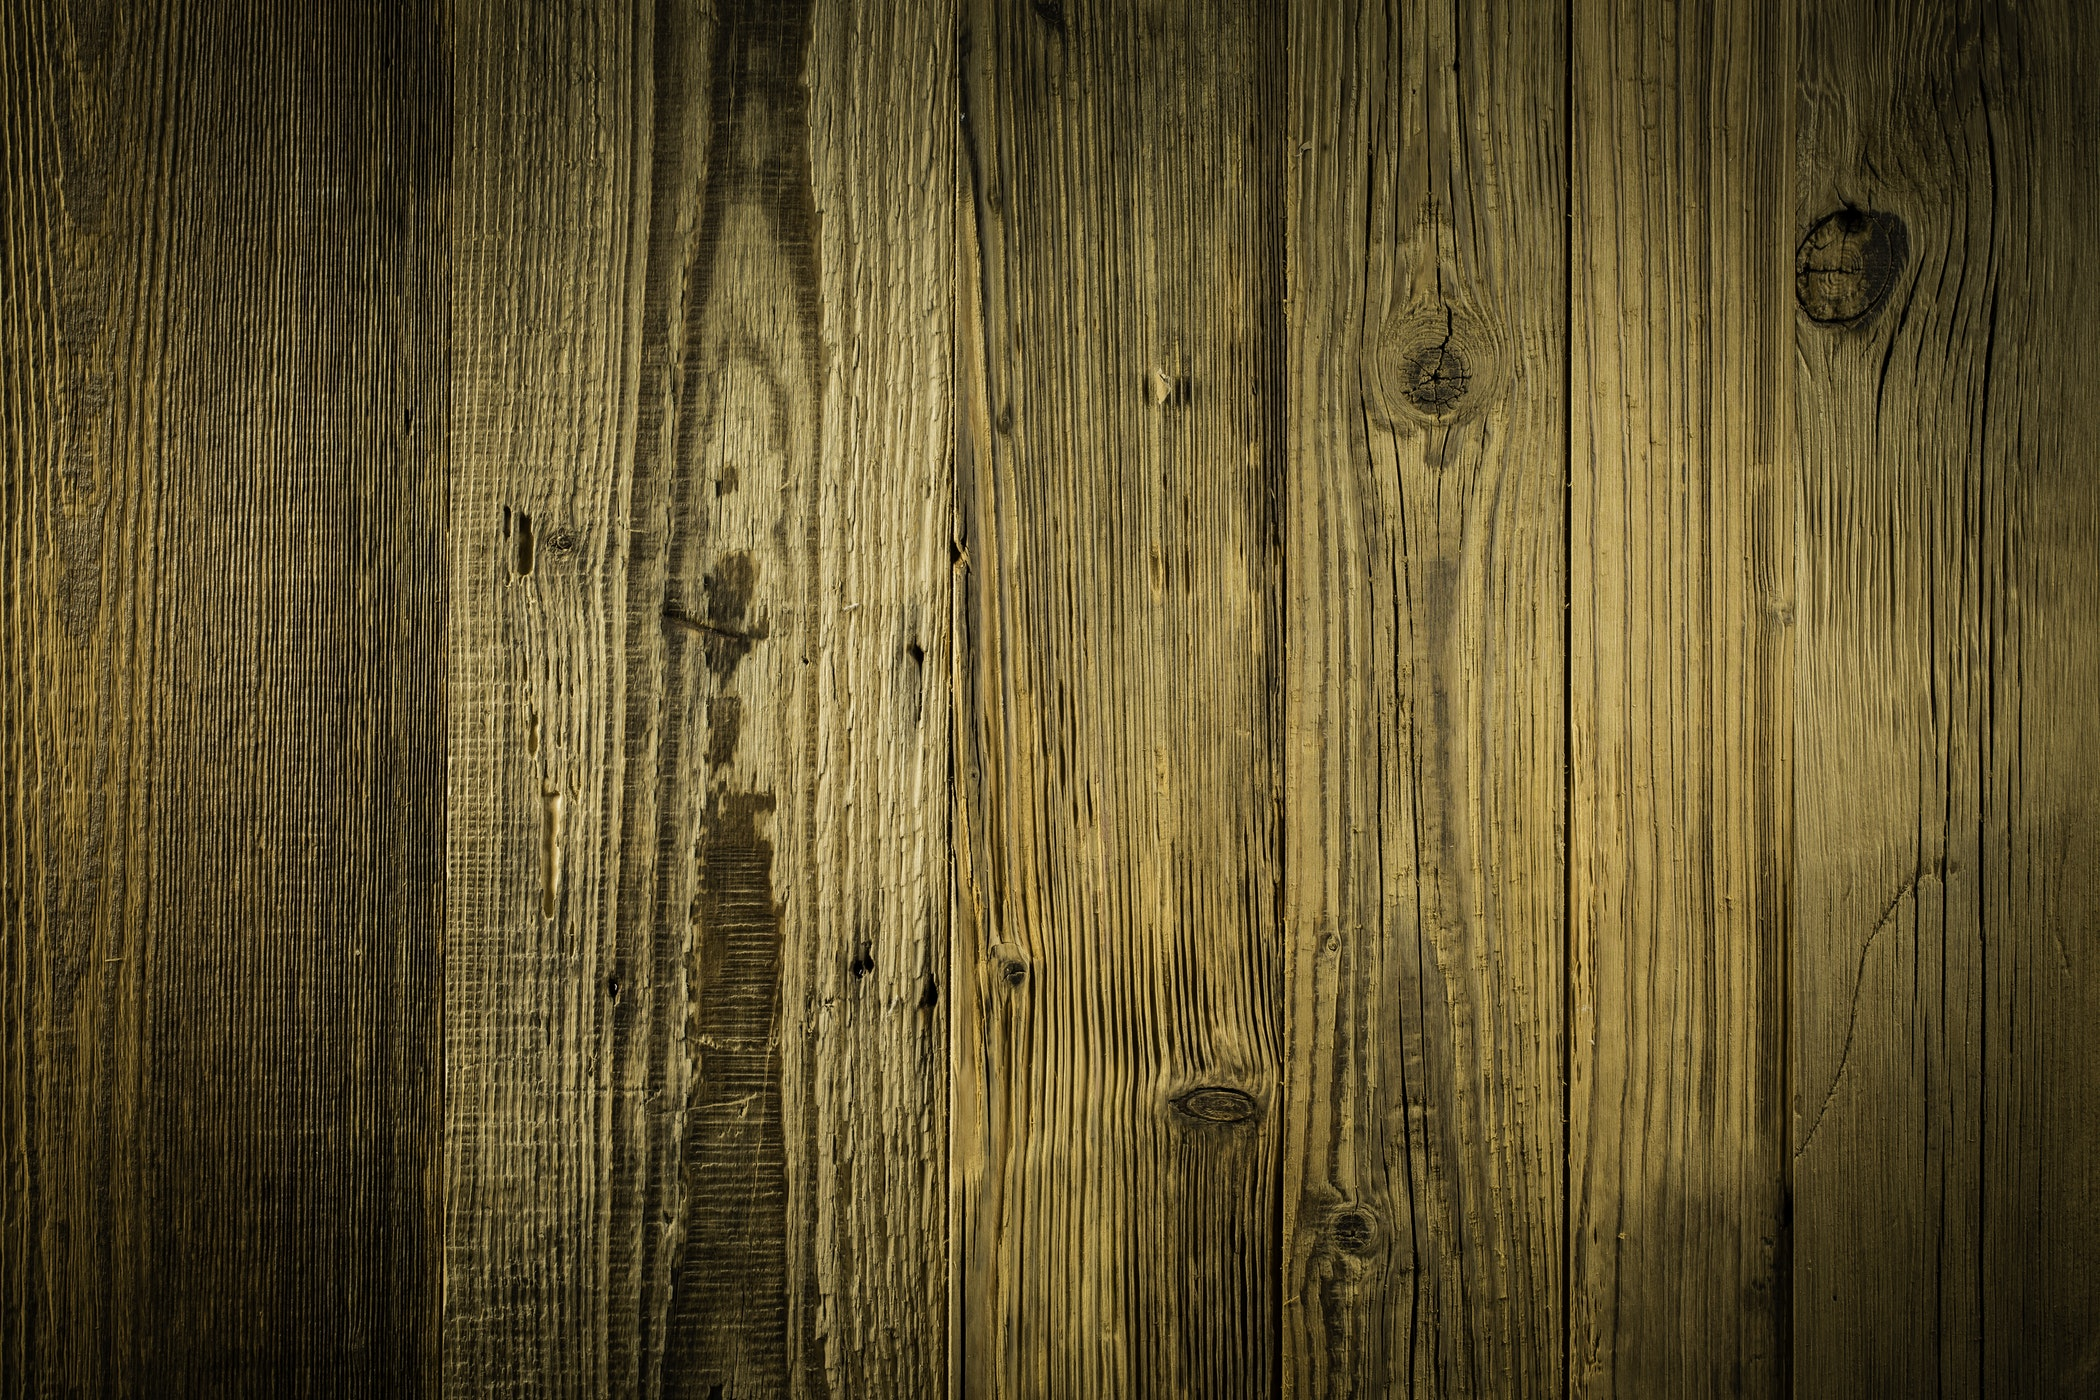 5 Best Liquid Floor Wax For Hardwood Floors That Actually Work